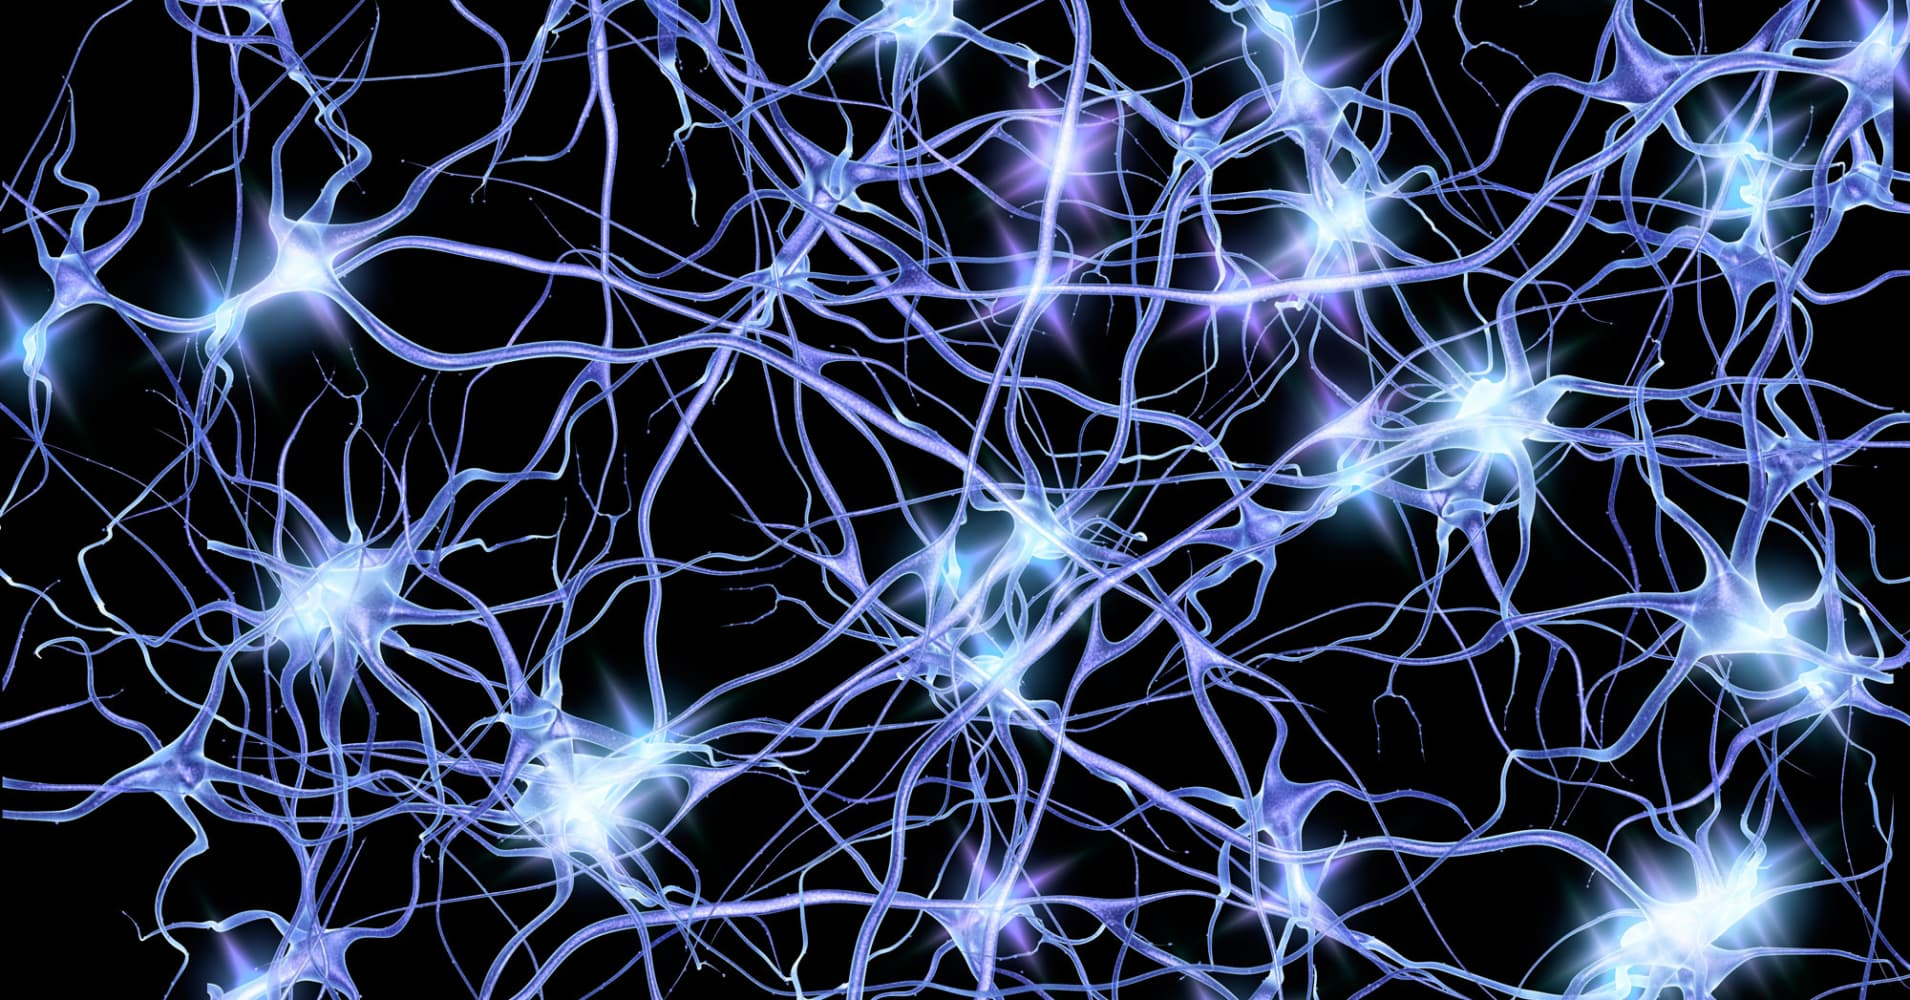 Treating psychiatric disorders through neuron stimulation